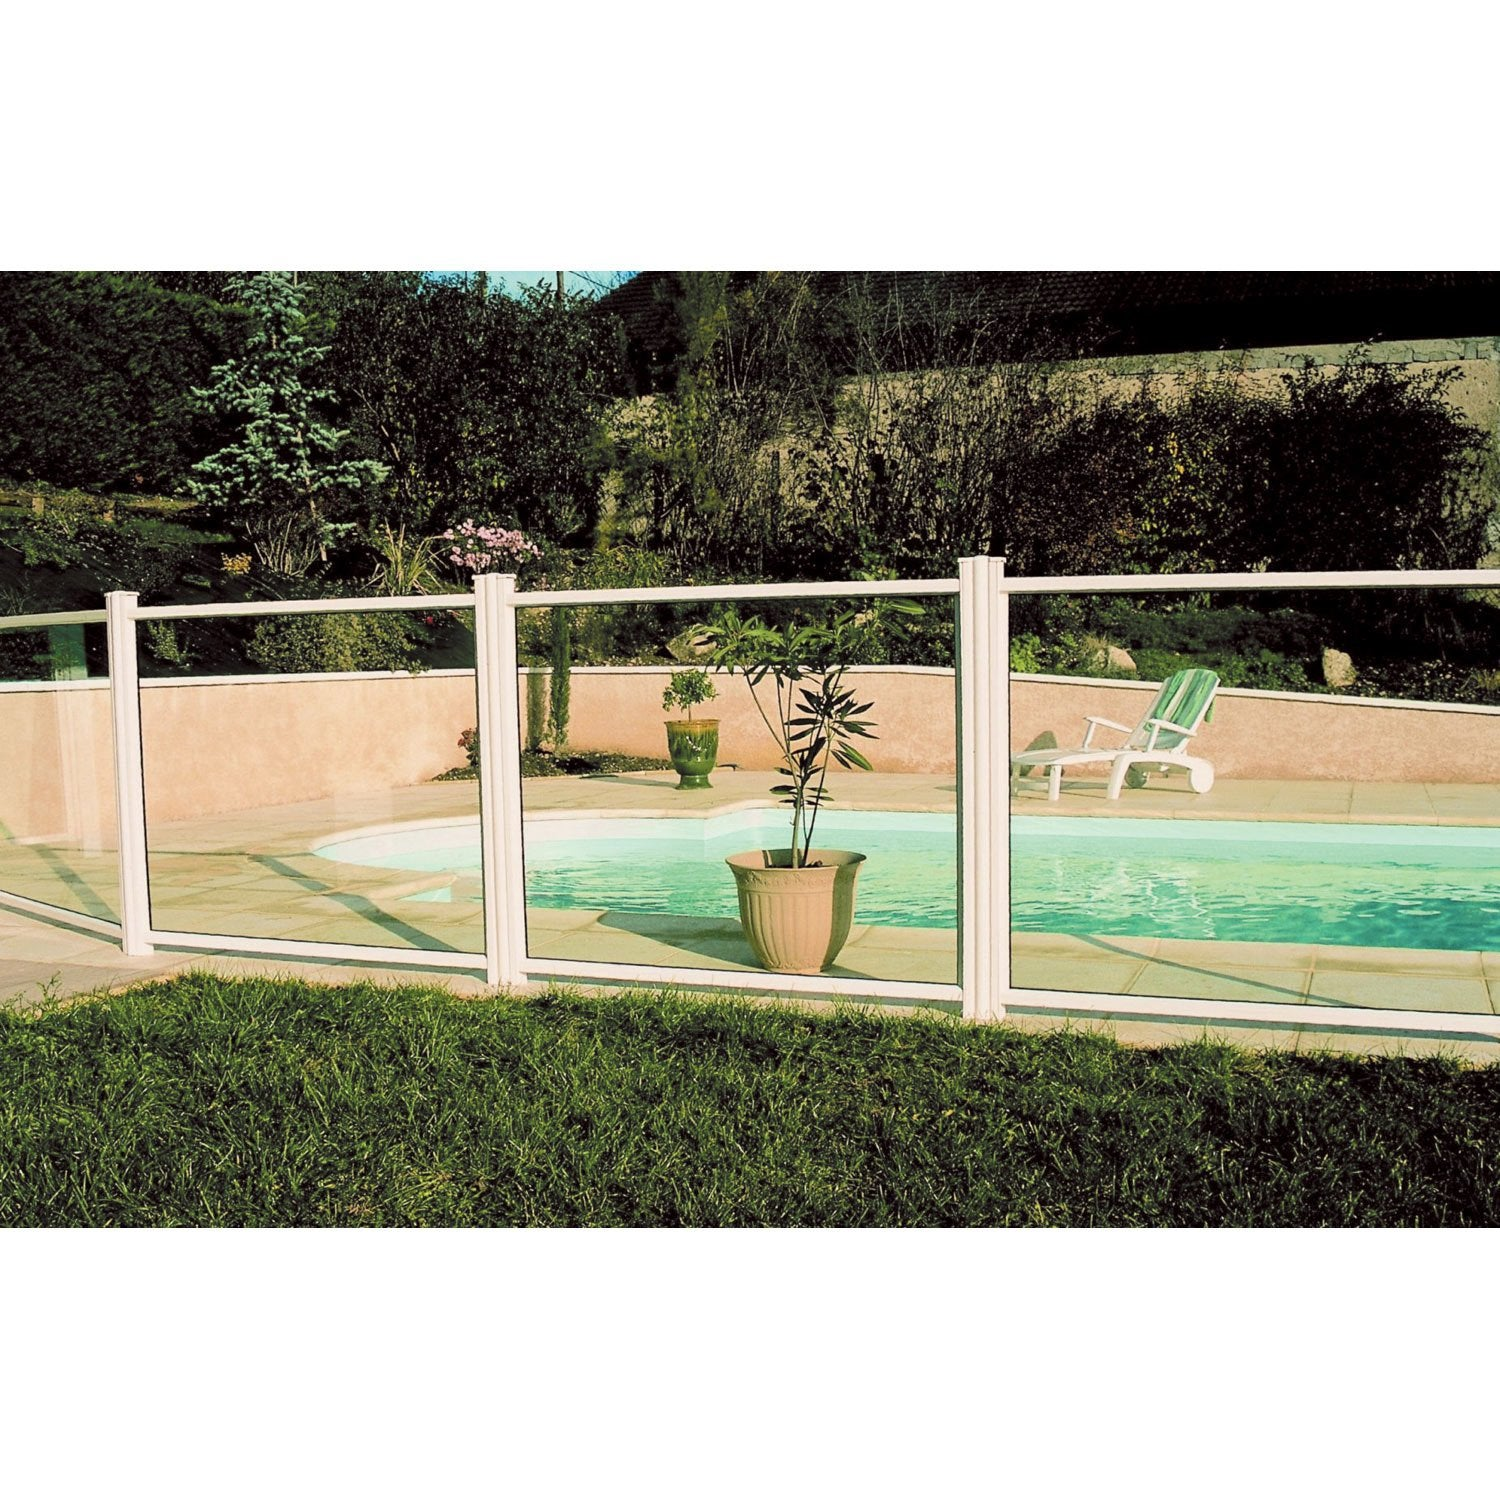 Barri re pour piscine aluminium esterel blanc 9010 for Barriere piscine leroy merlin